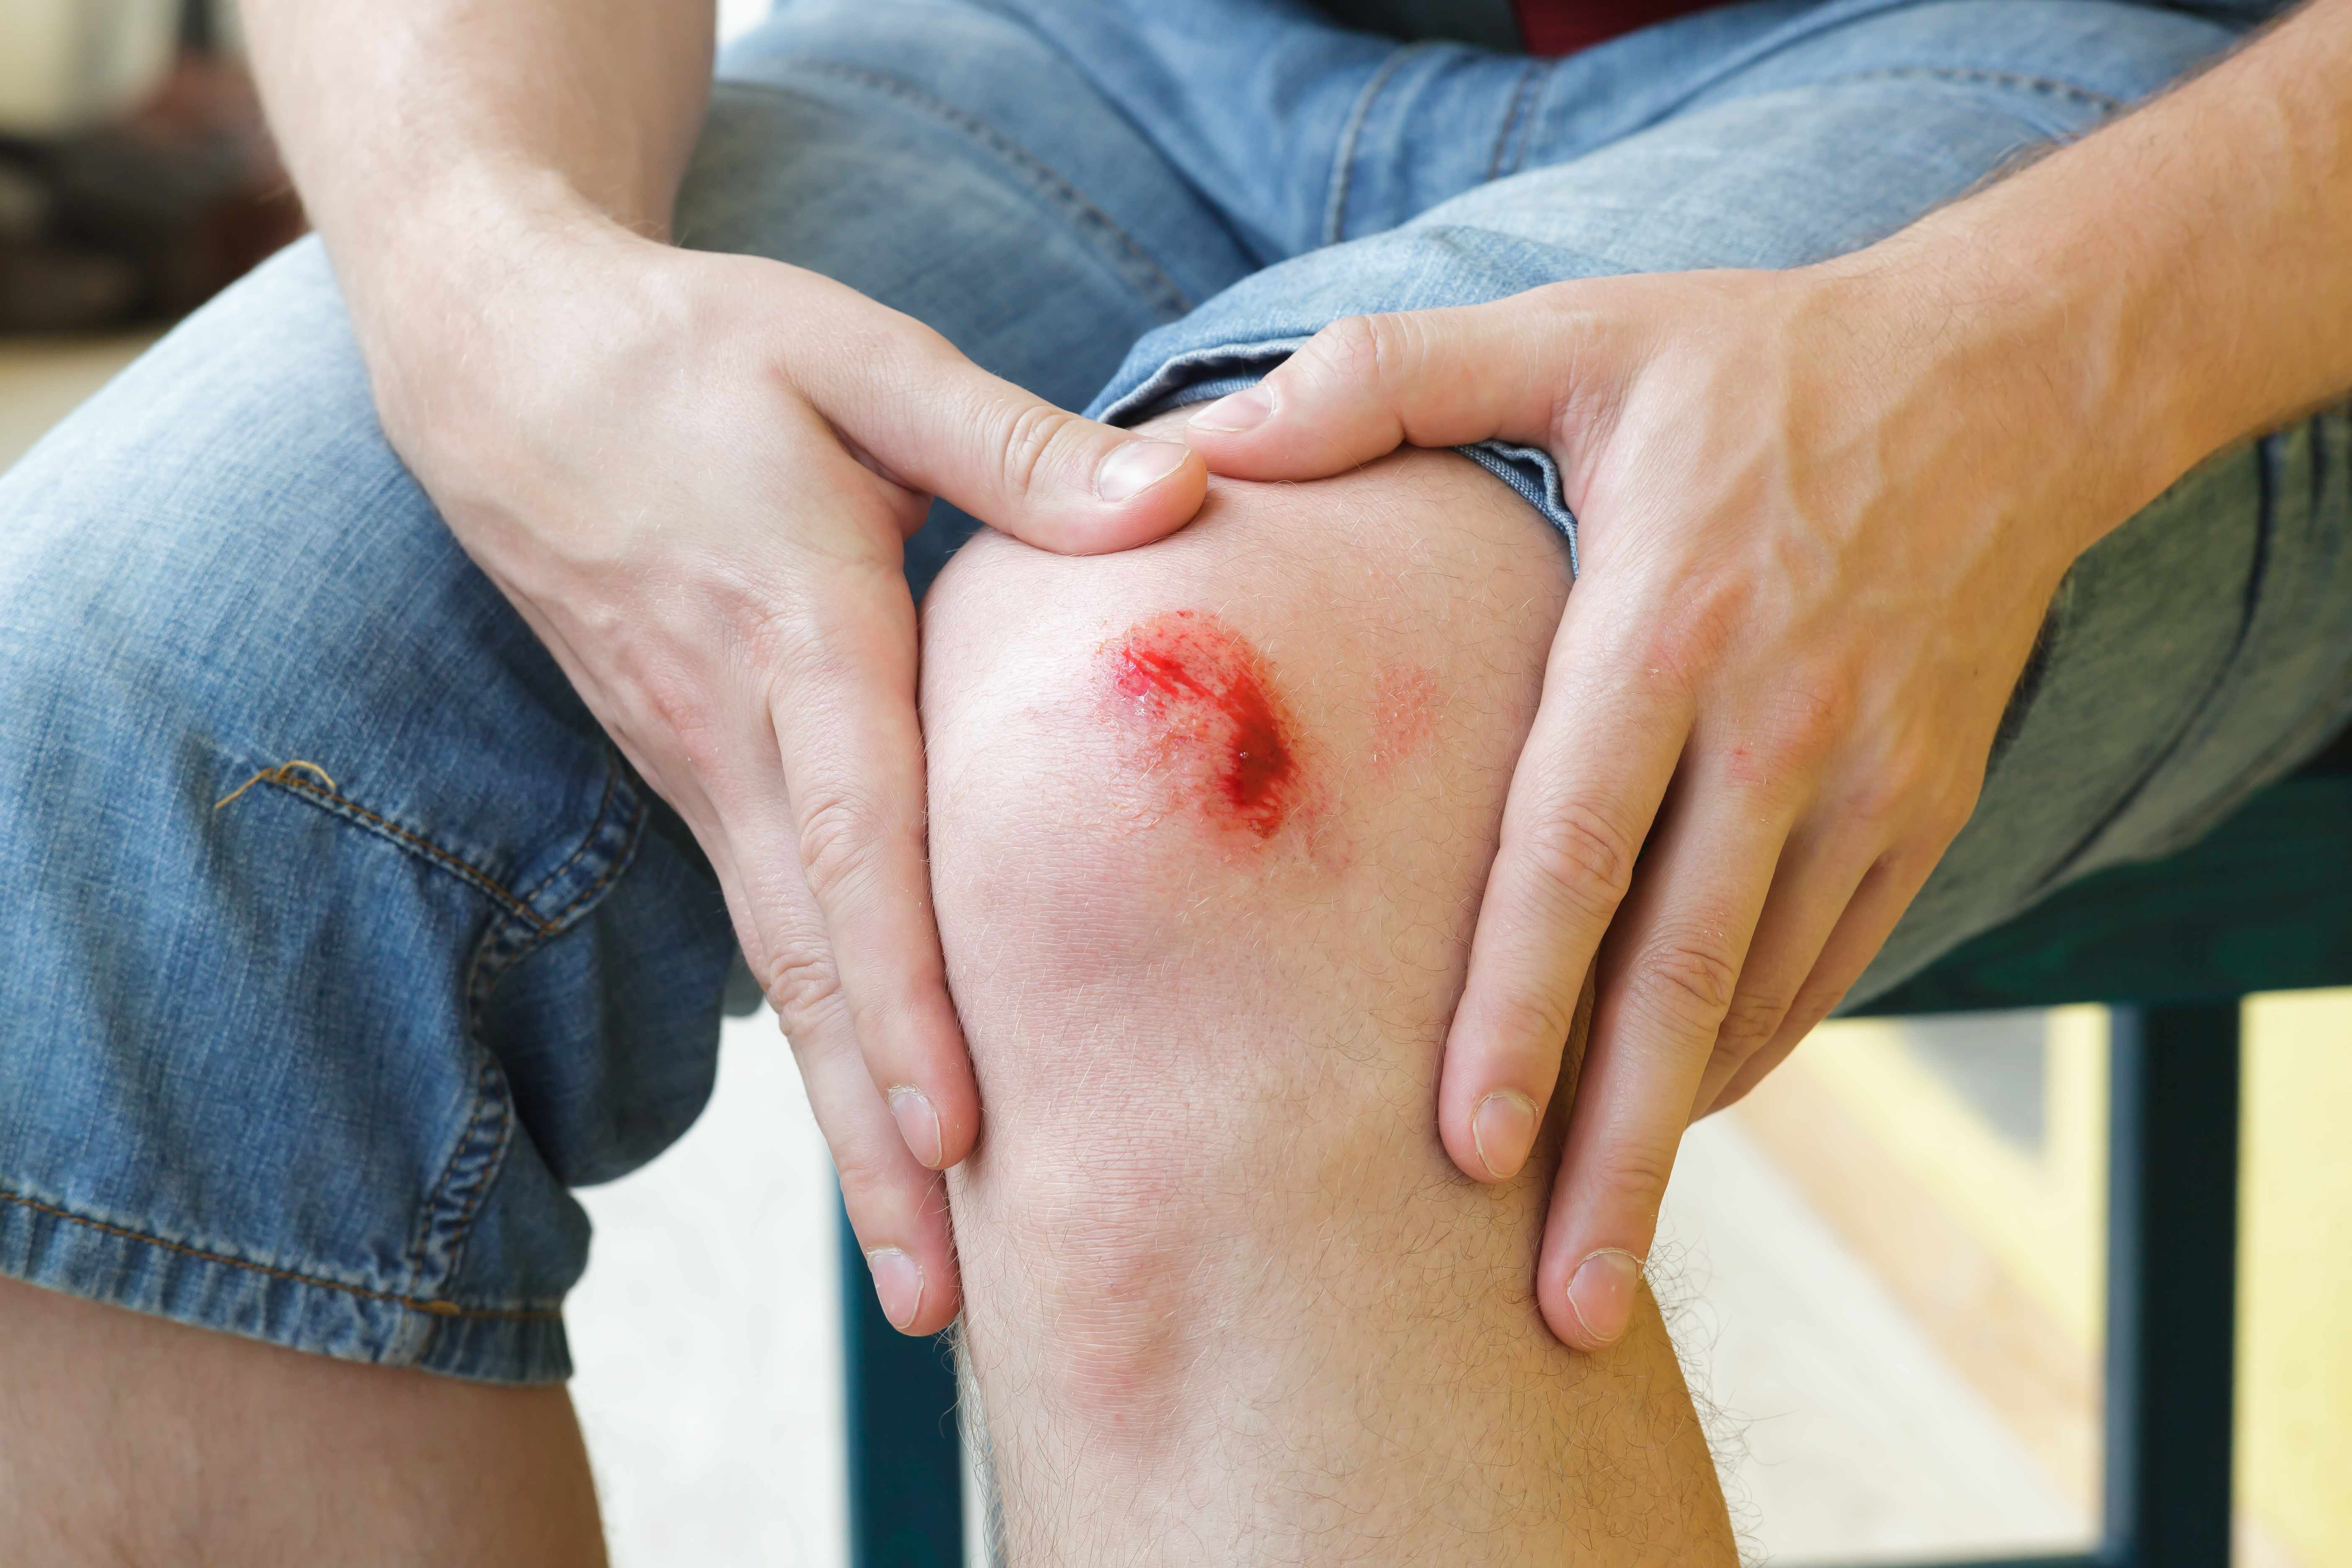 a person holding his or her knee that has been scraped and is bleeding